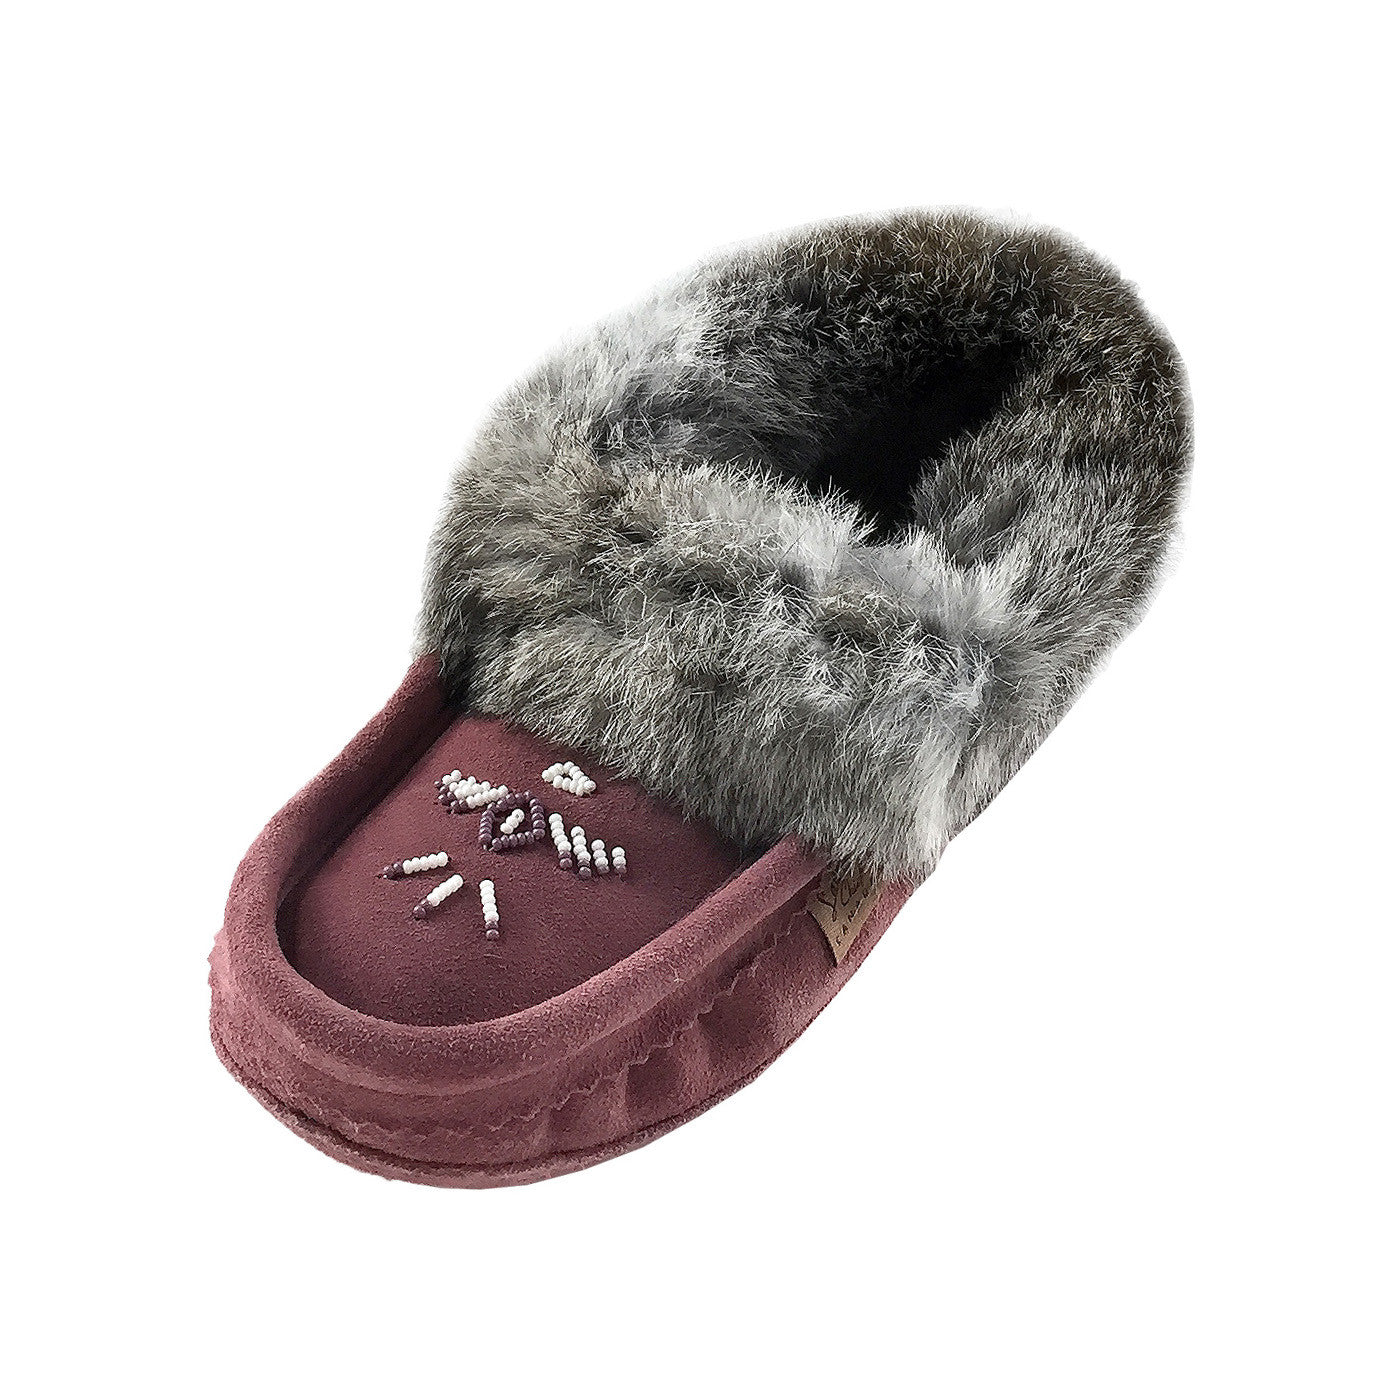 8e012ea13 Women's Fleece Lined with Real Rabbit Fur Collar Moccasin Slippers ...